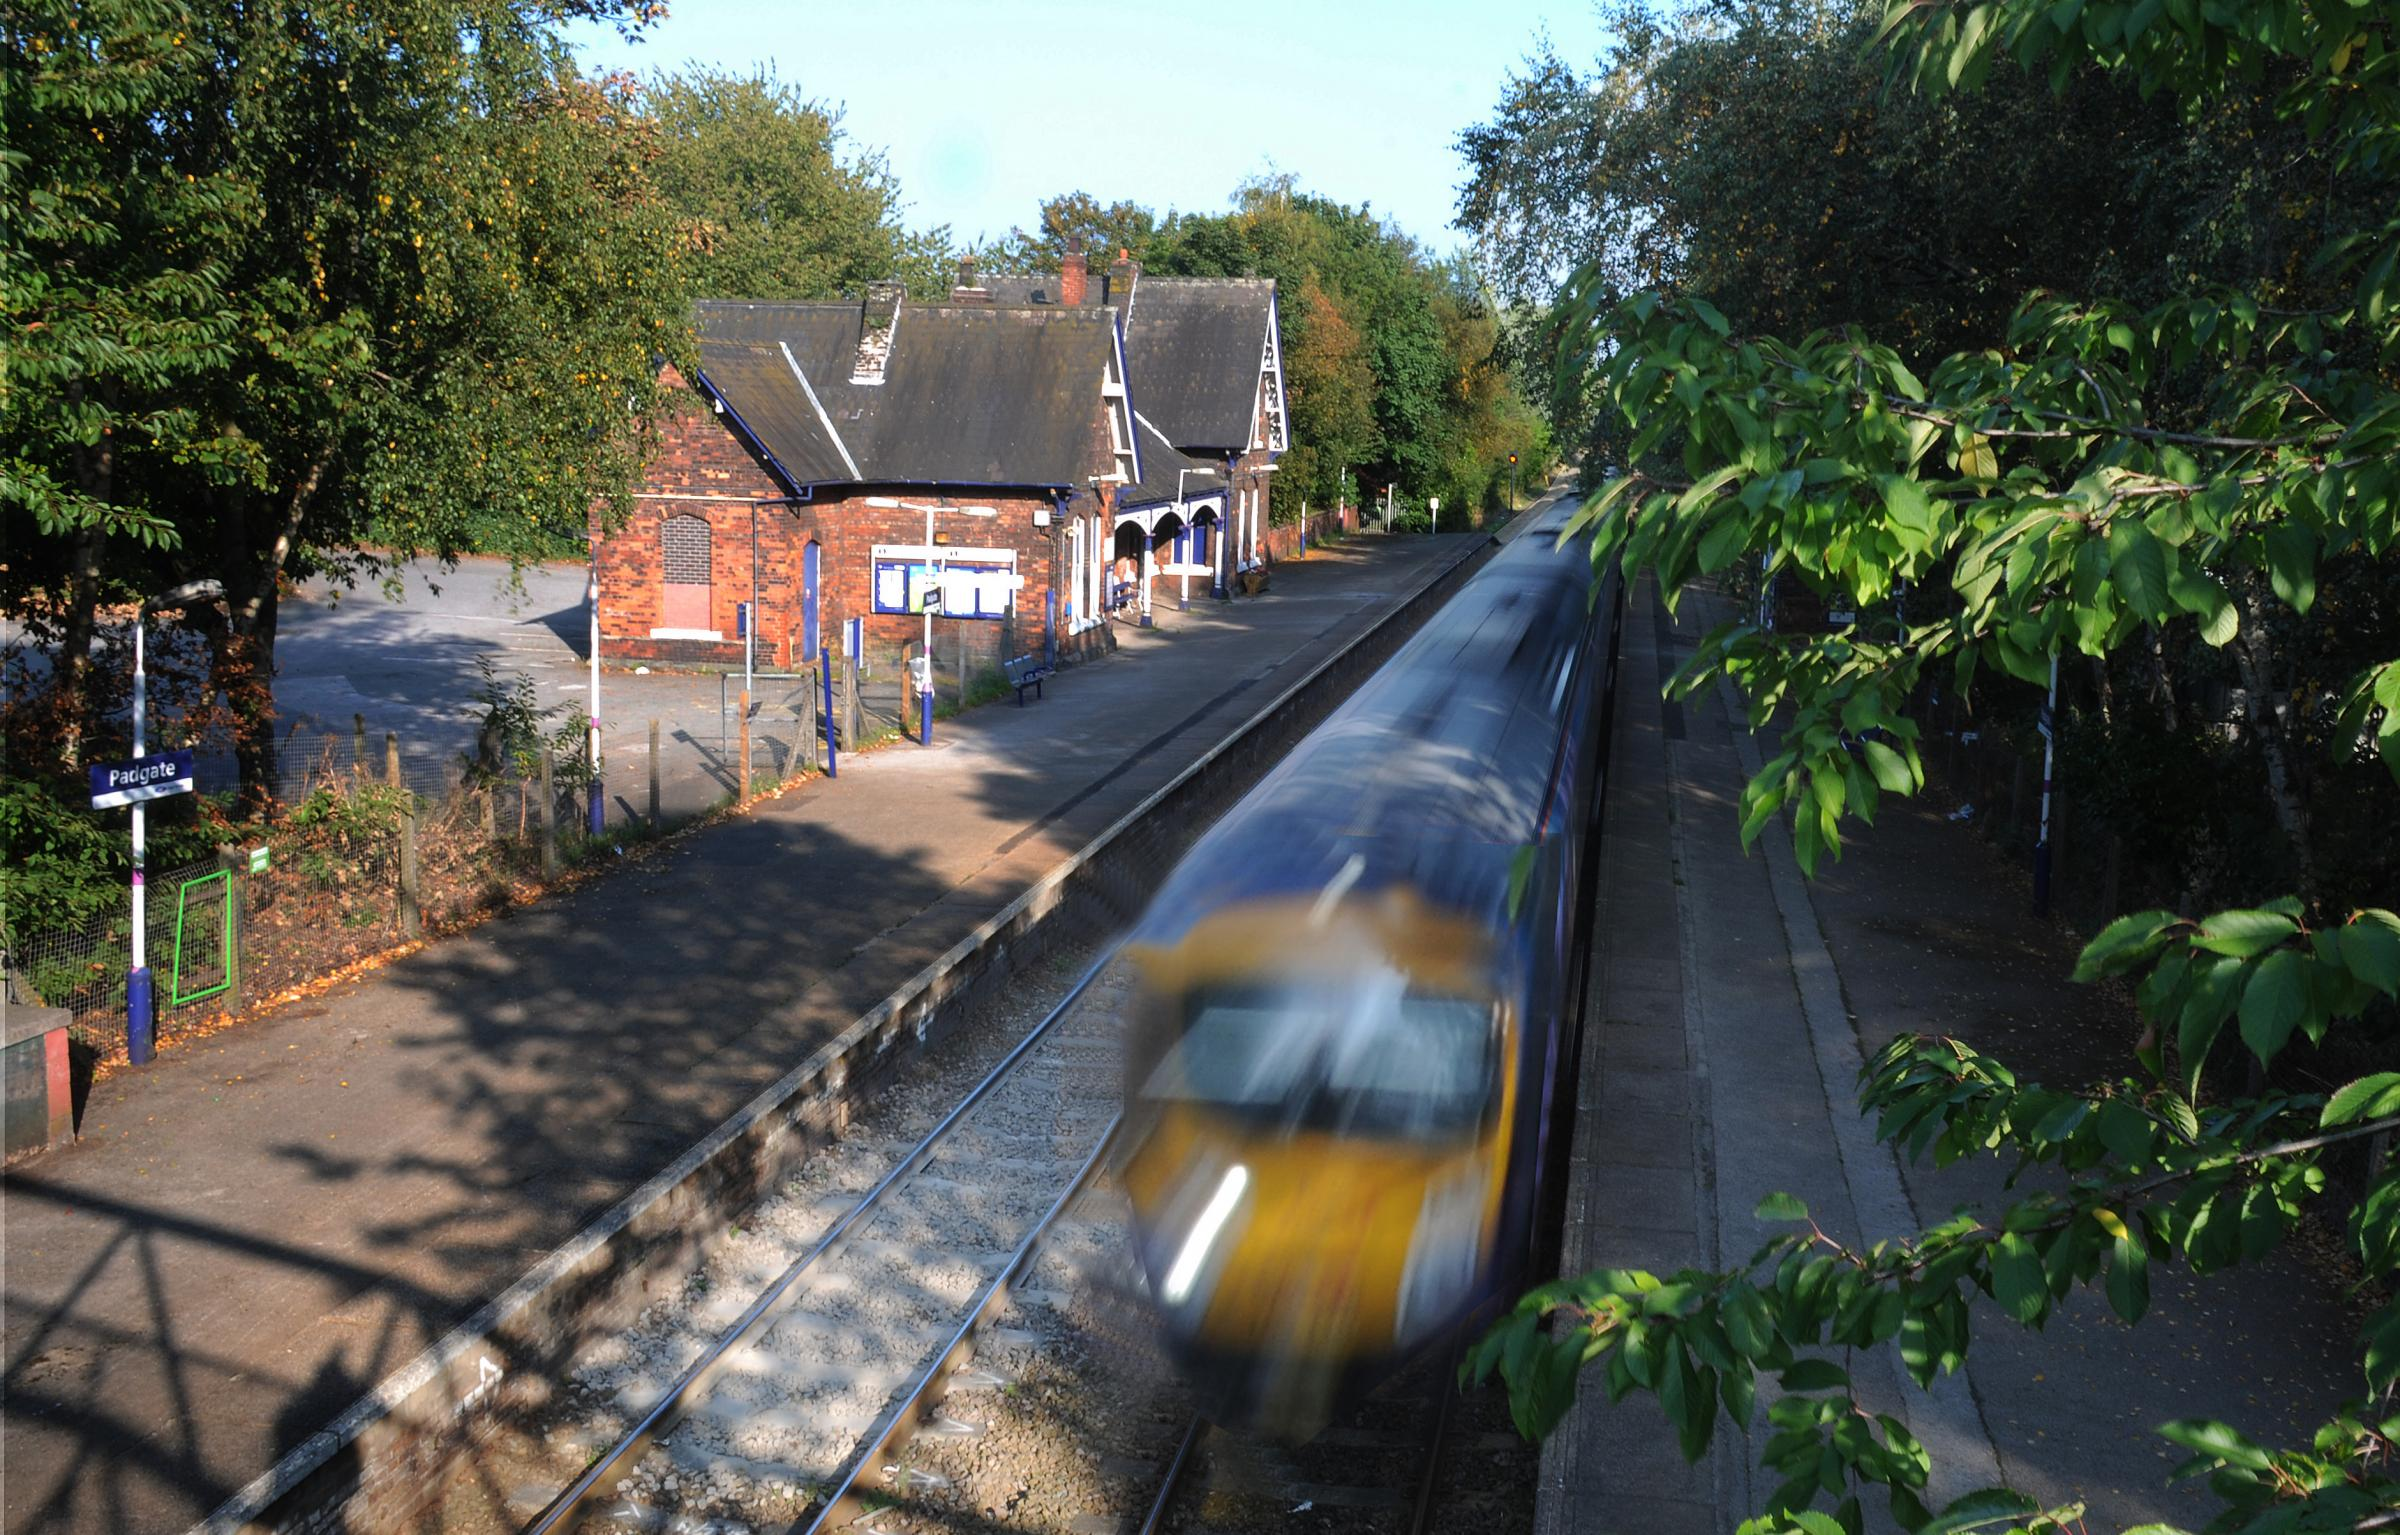 Improvements worth as much as £200,000 are being planned at Padgate Station.